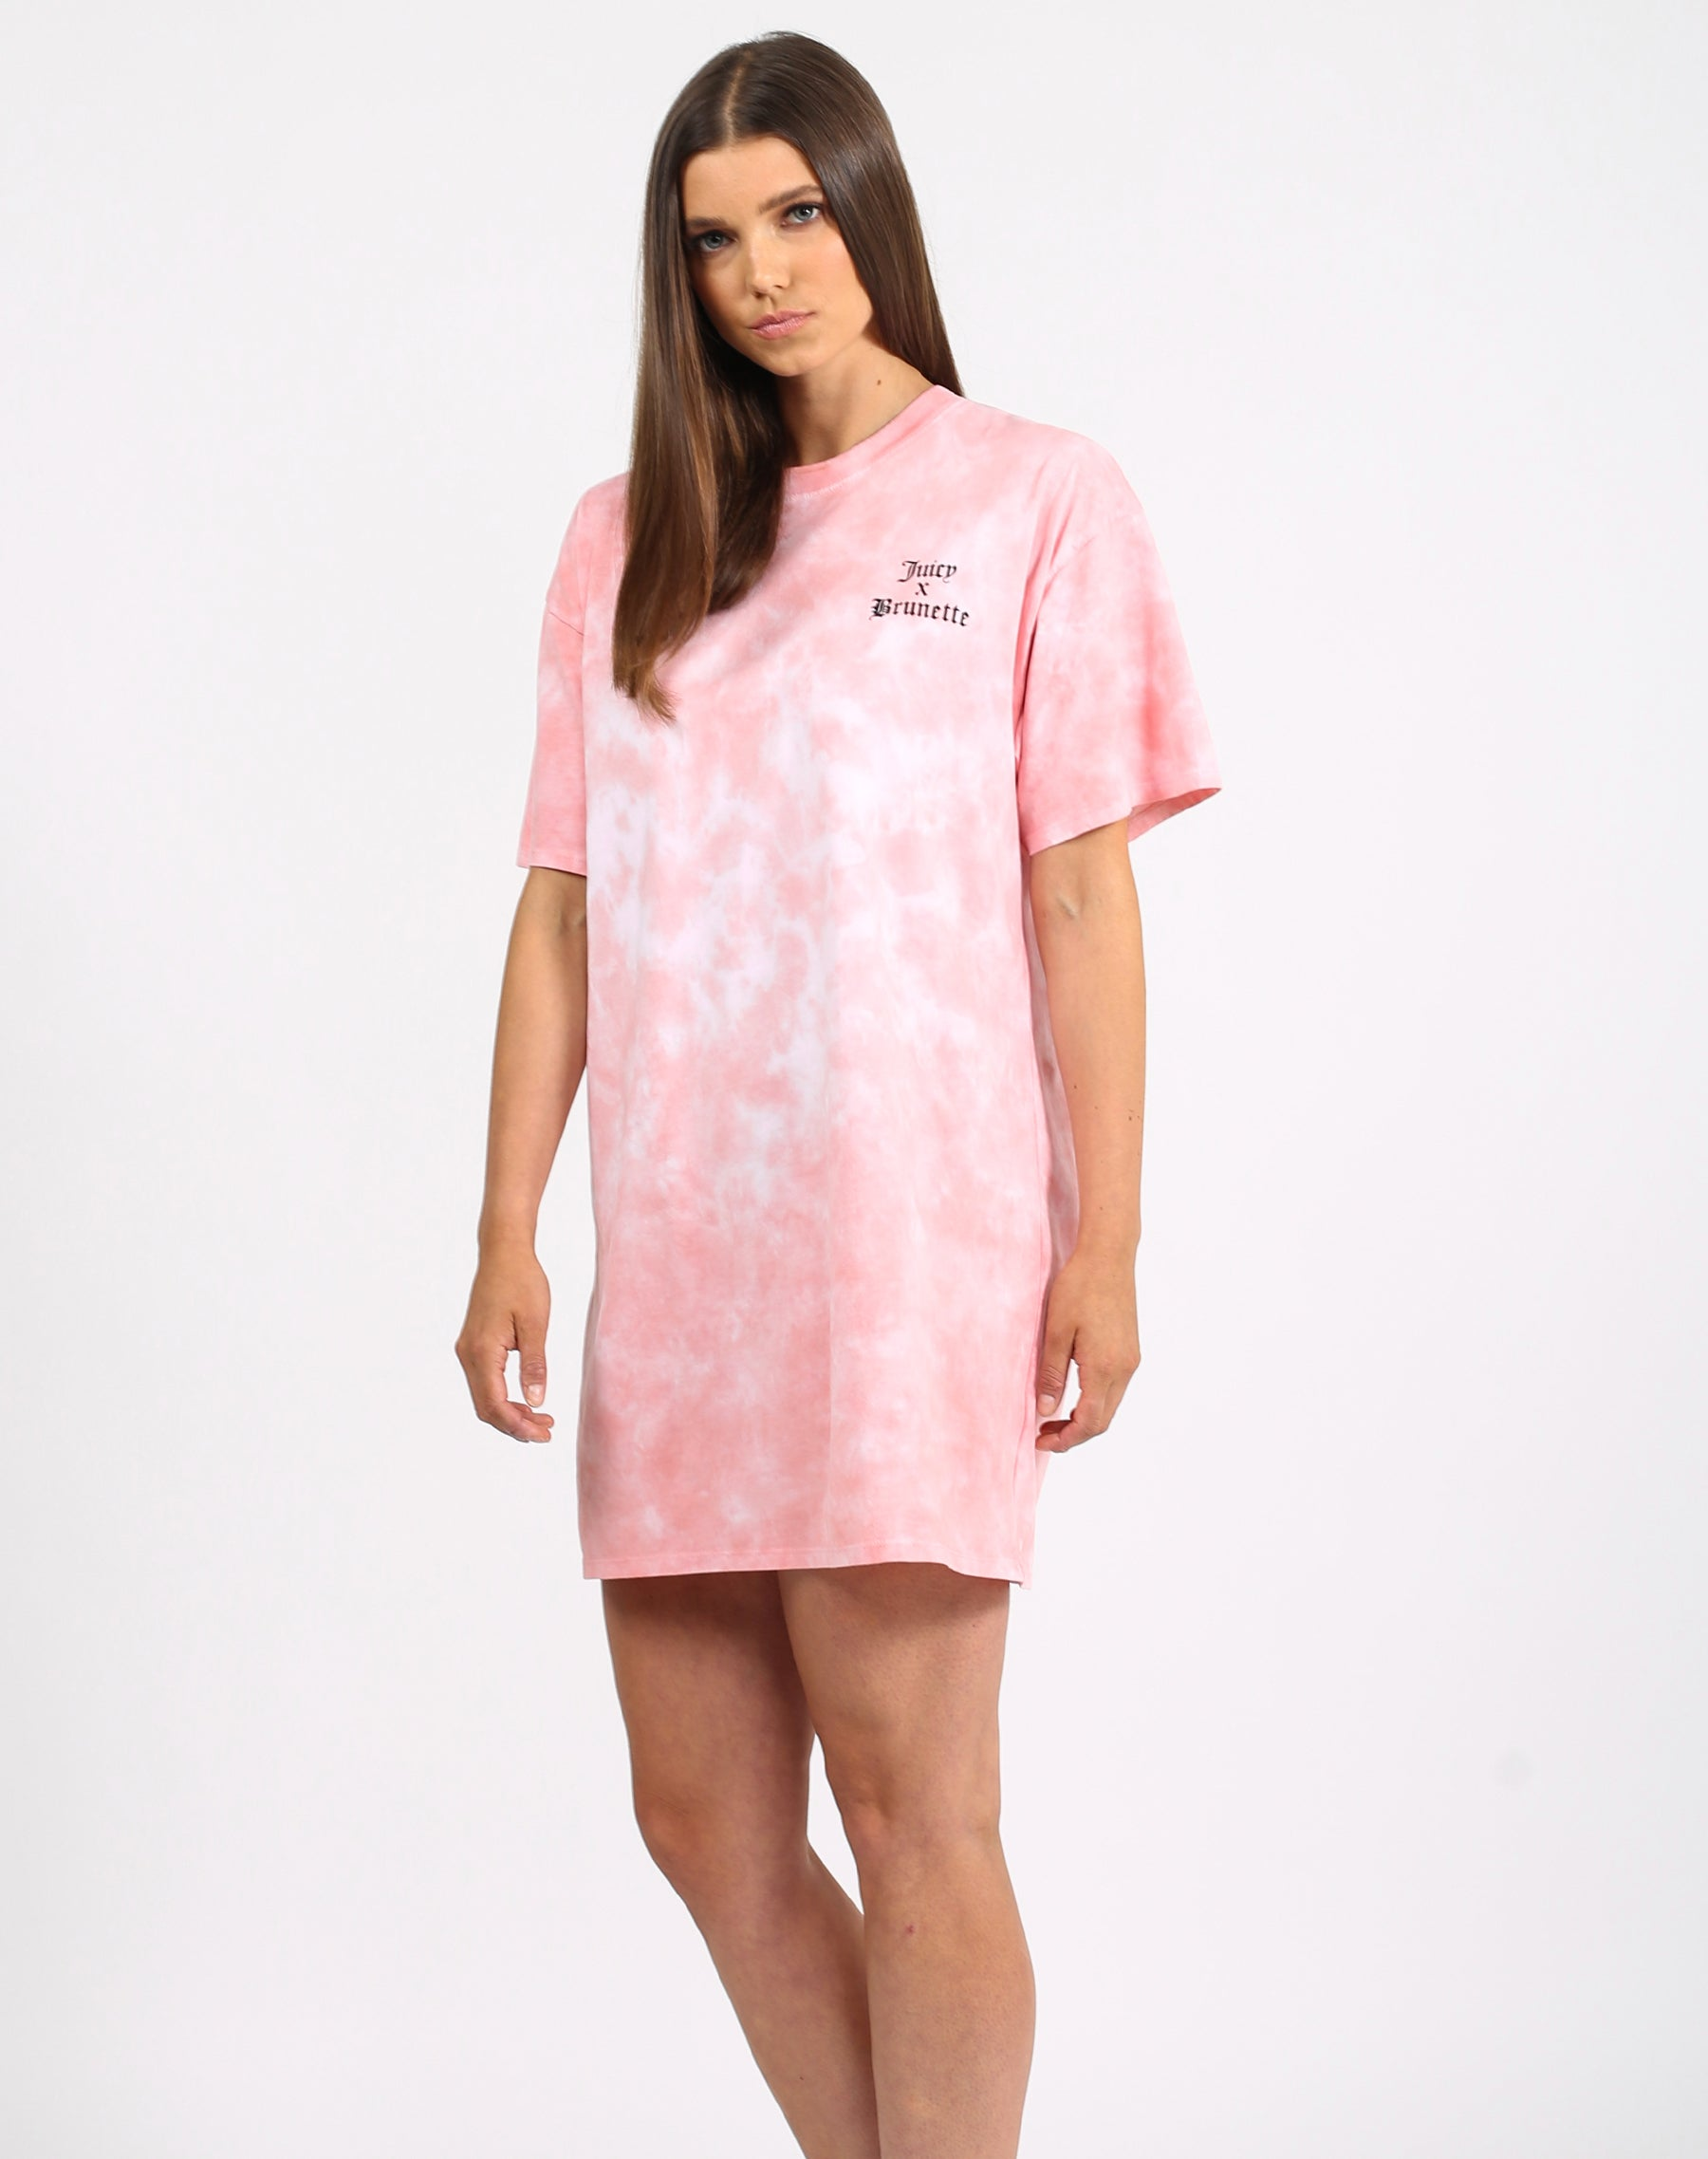 This is a photo of a model wearing the t-shirt dress  in pink marble by Brunette the Label x Juicy Couture.